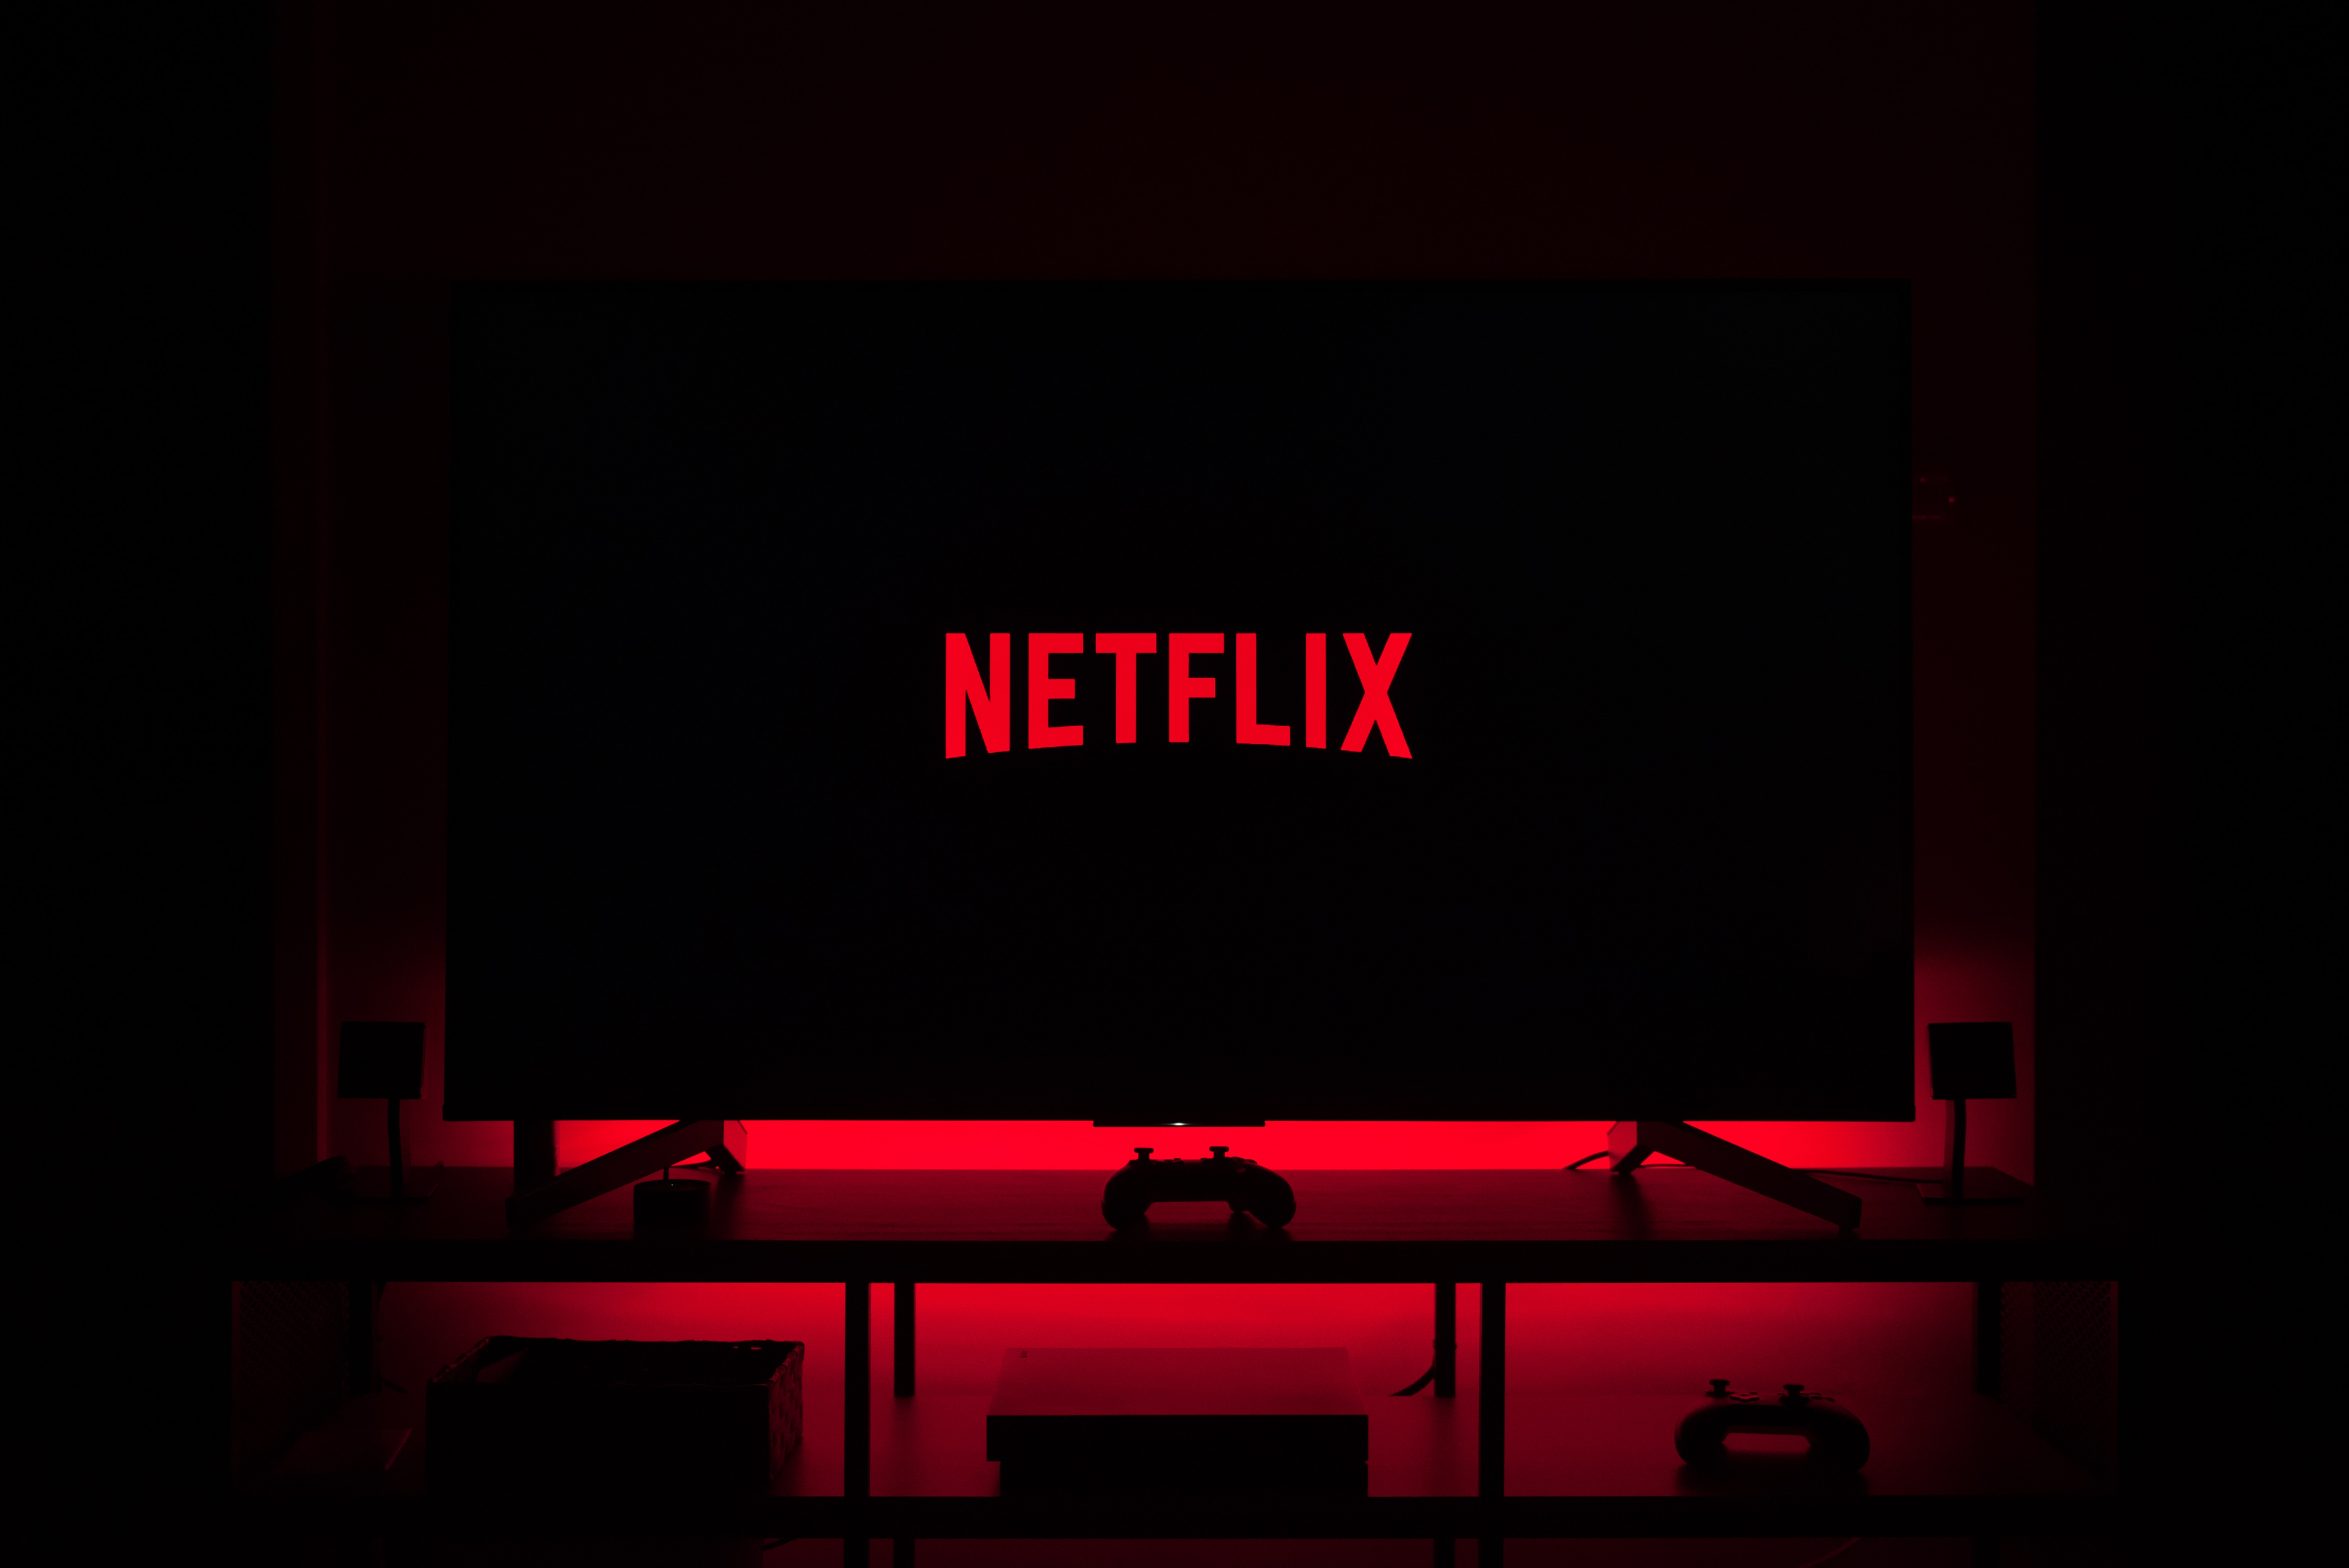 Viewers' Guide: What to watch on Netflix in February 2020